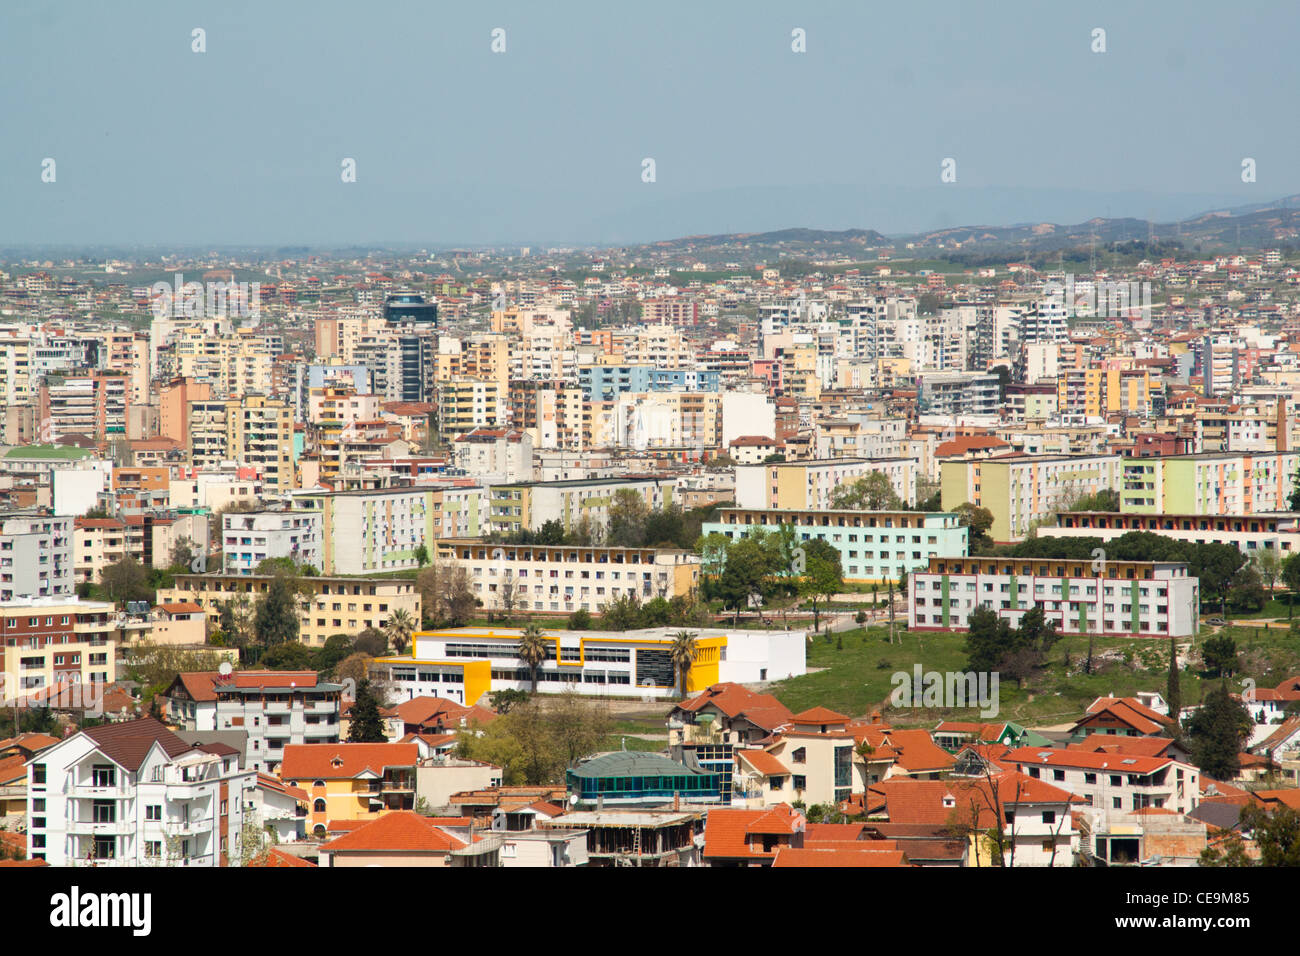 View over the city of Tirana, Albania - Stock Image